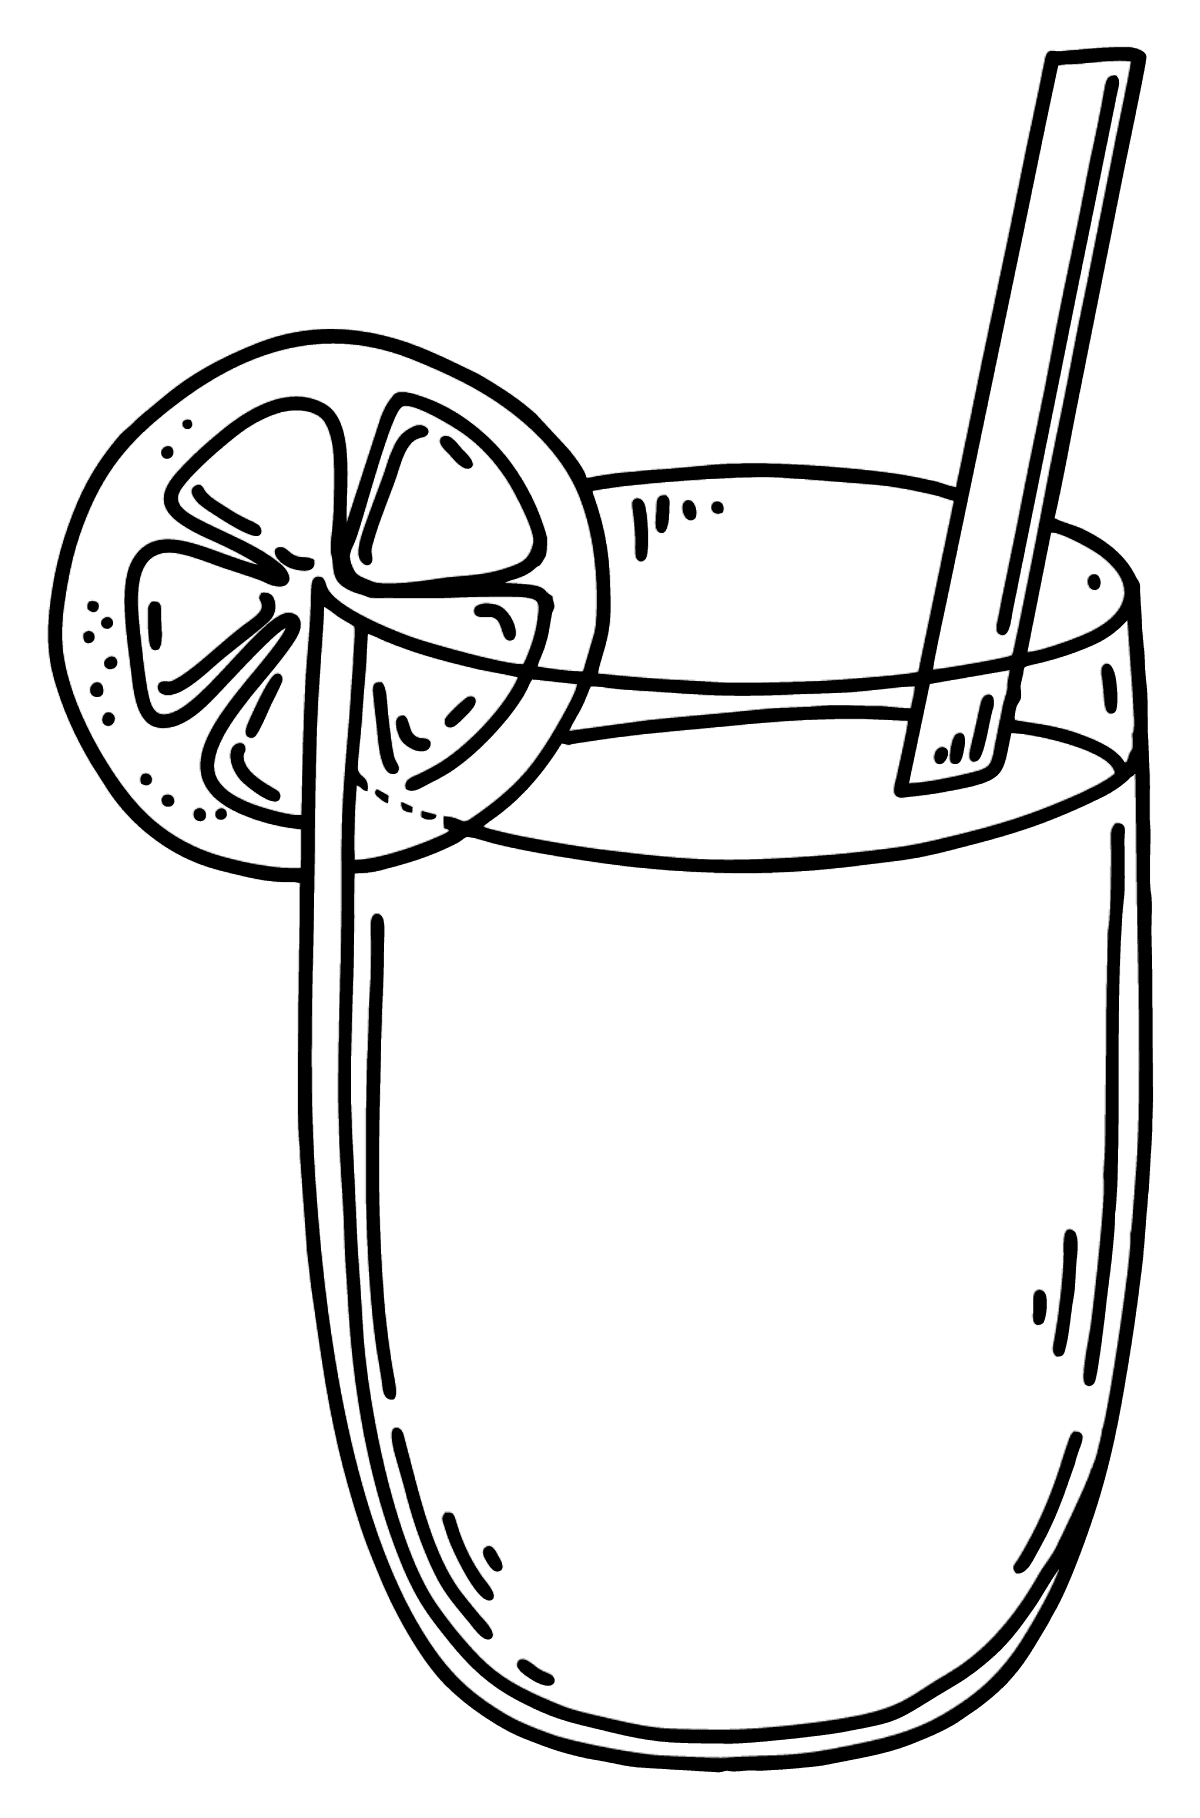 Coloring page - glass of juice - Coloring Pages for Kids